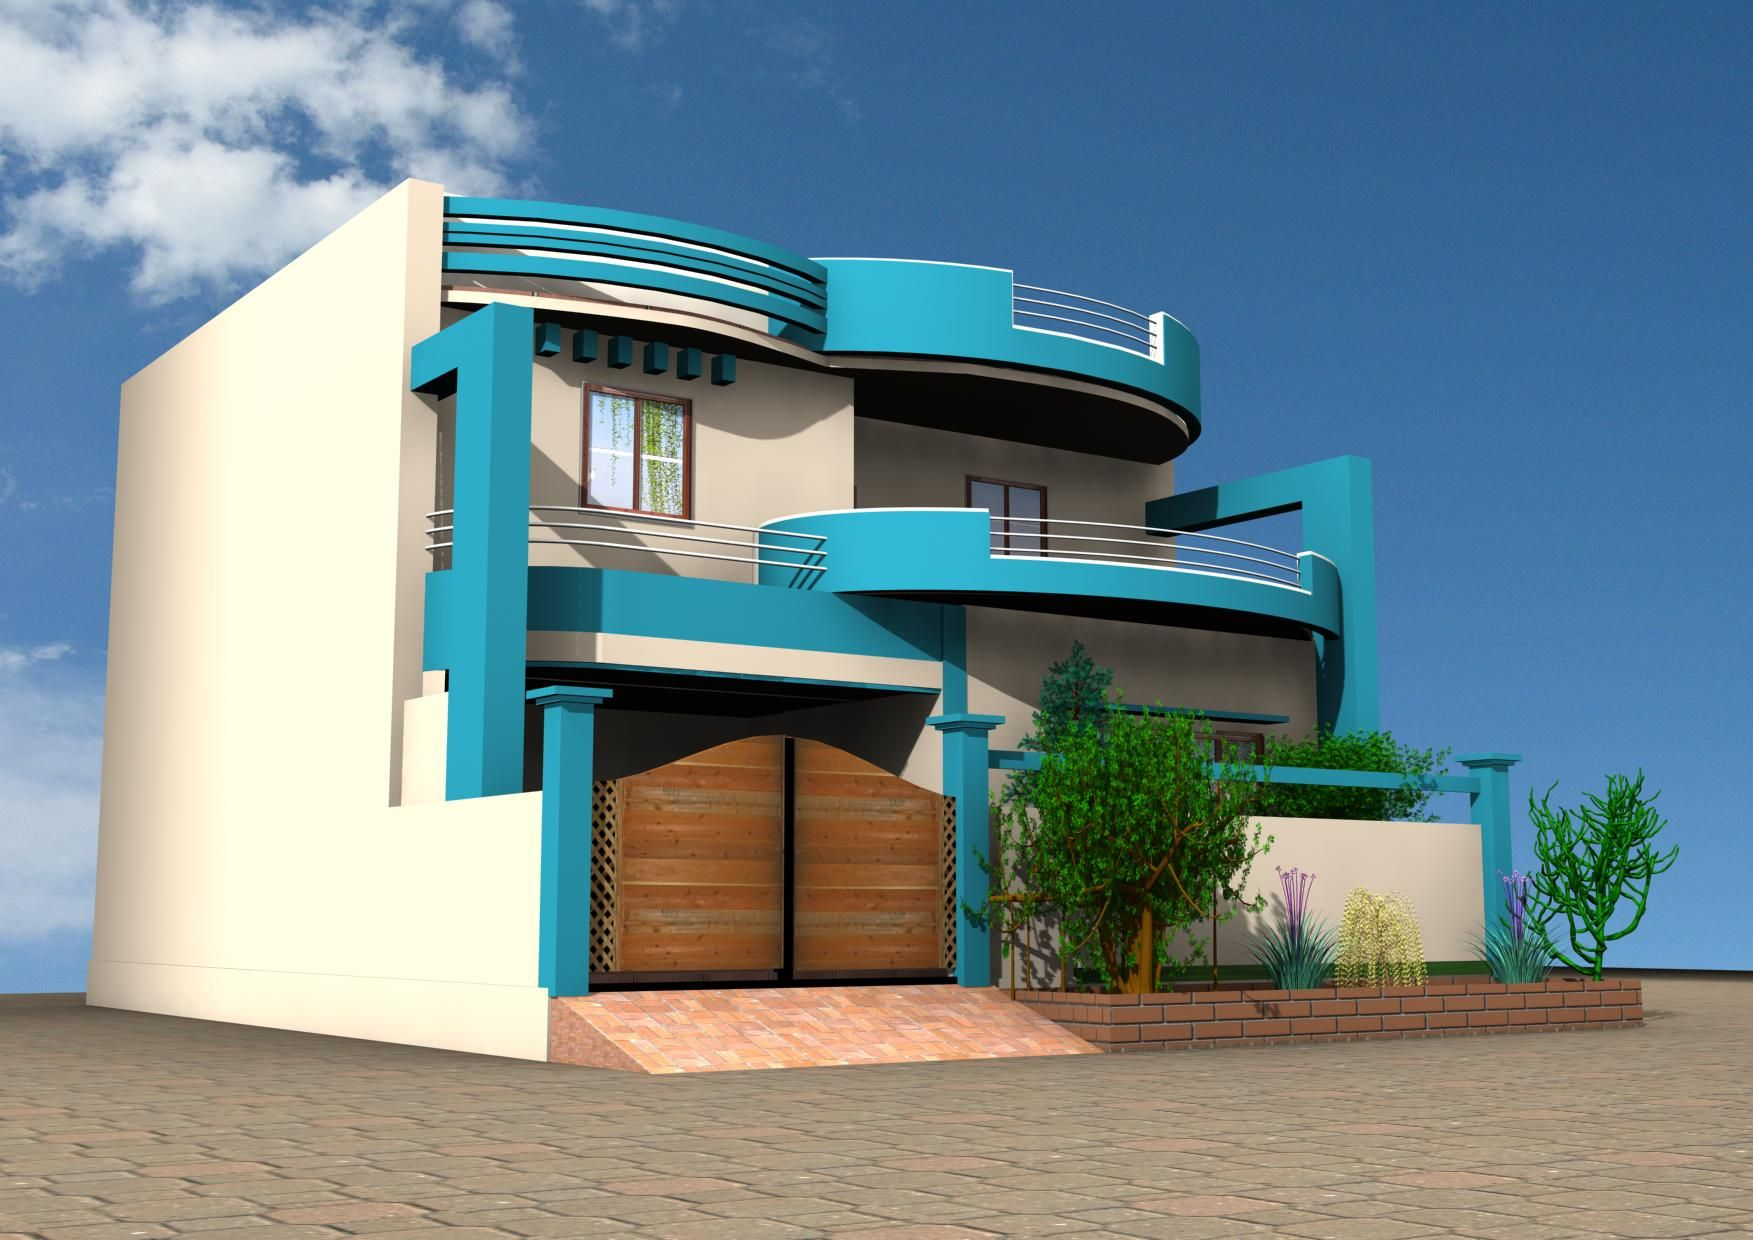 3d home design images hd 1080p for Building design courses